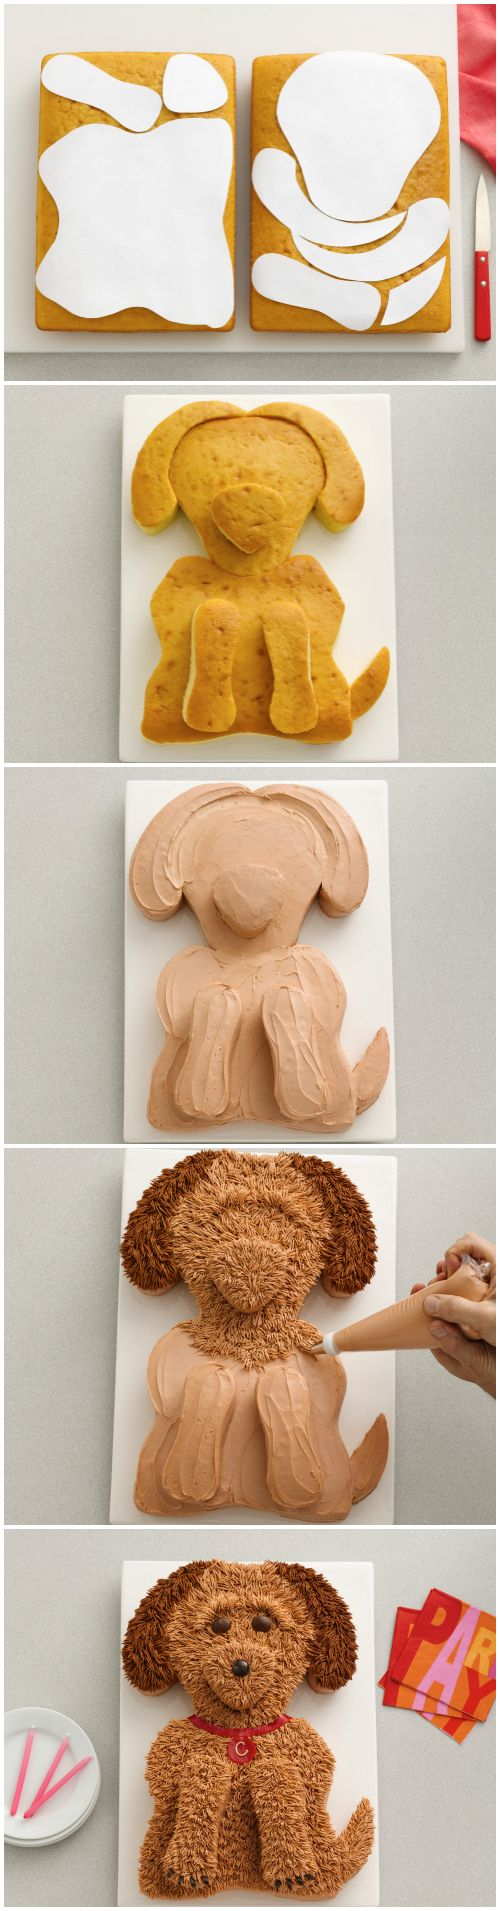 Dog Cake, ridiculous but I can see myself making this cake...: